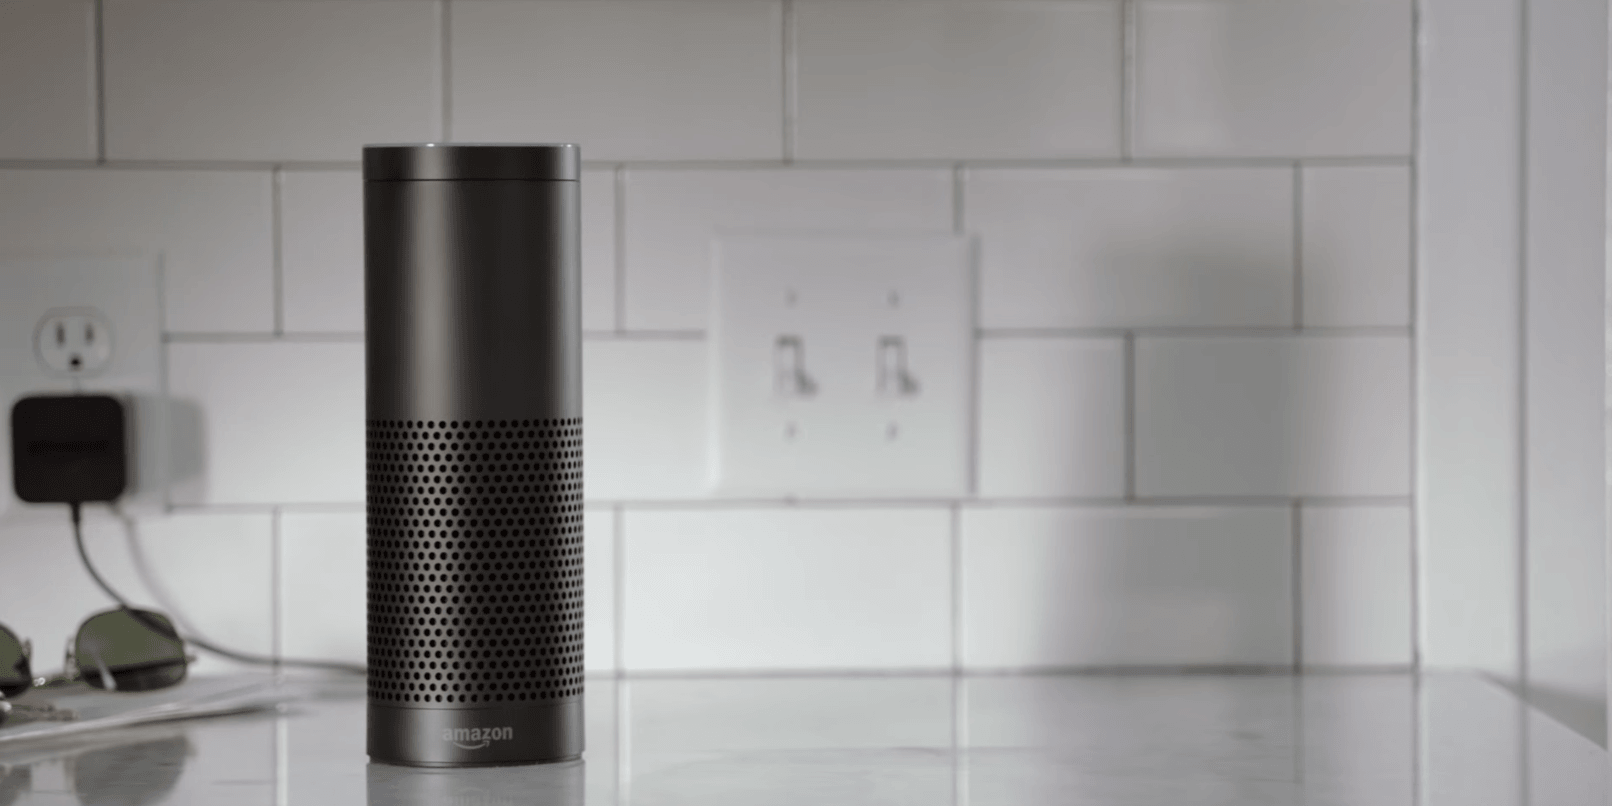 Amazon resorts to First Amendment to protect Alexa recordings in murder